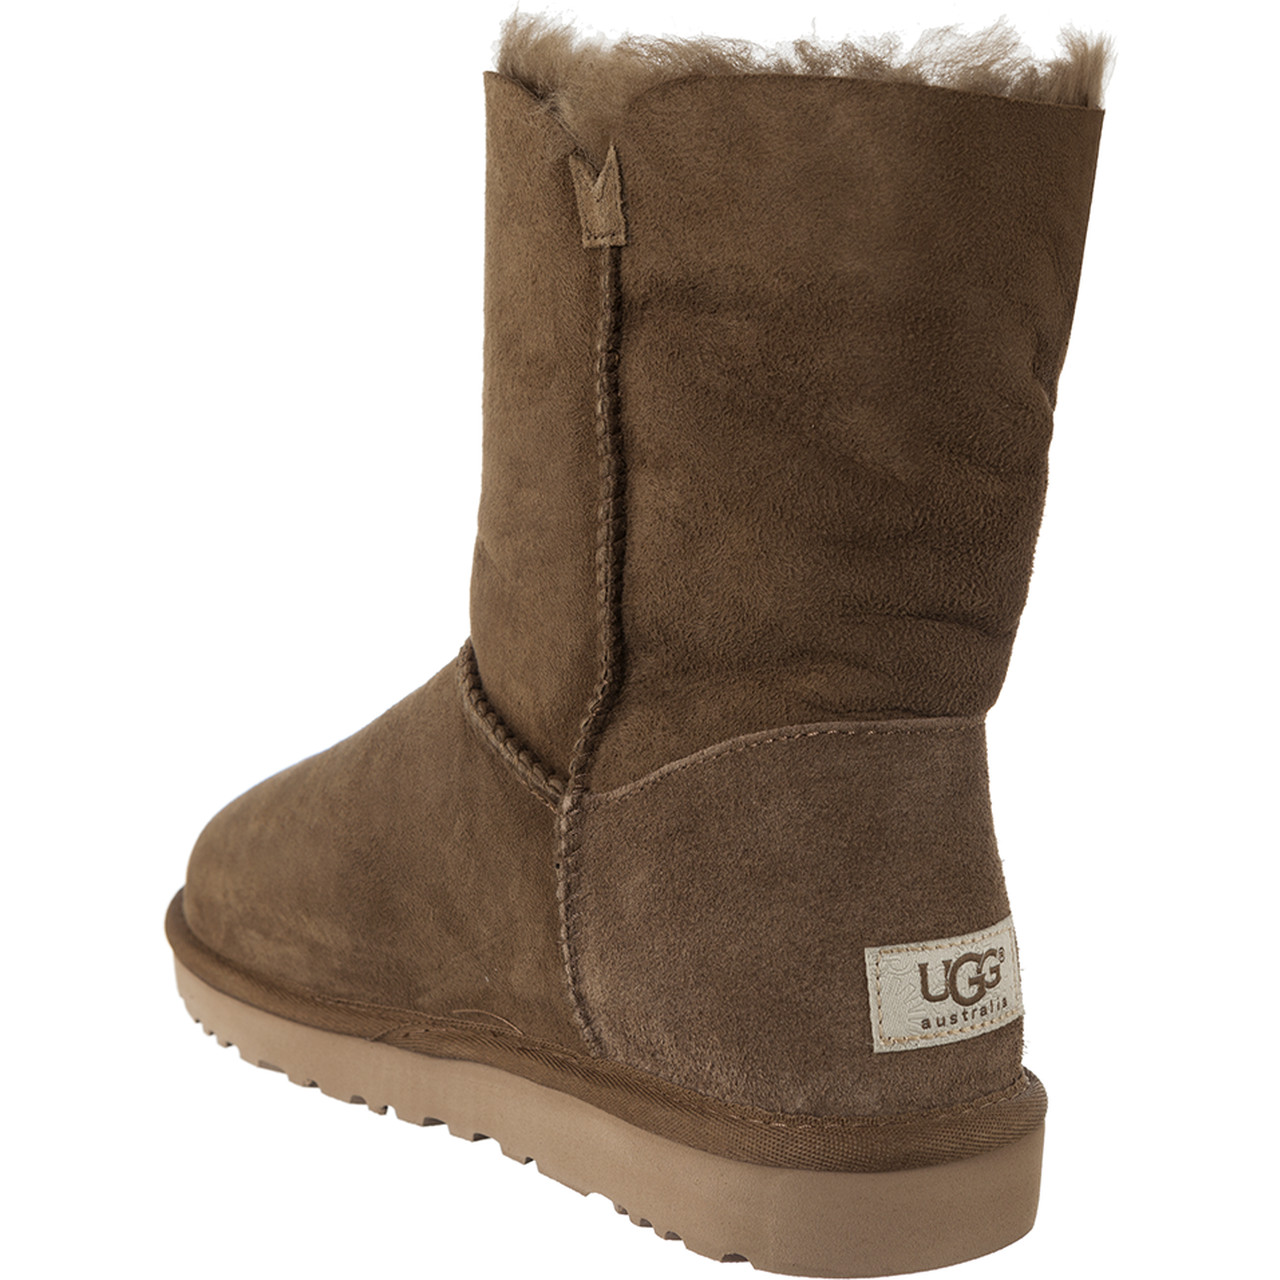 real uggs for 30 dollars